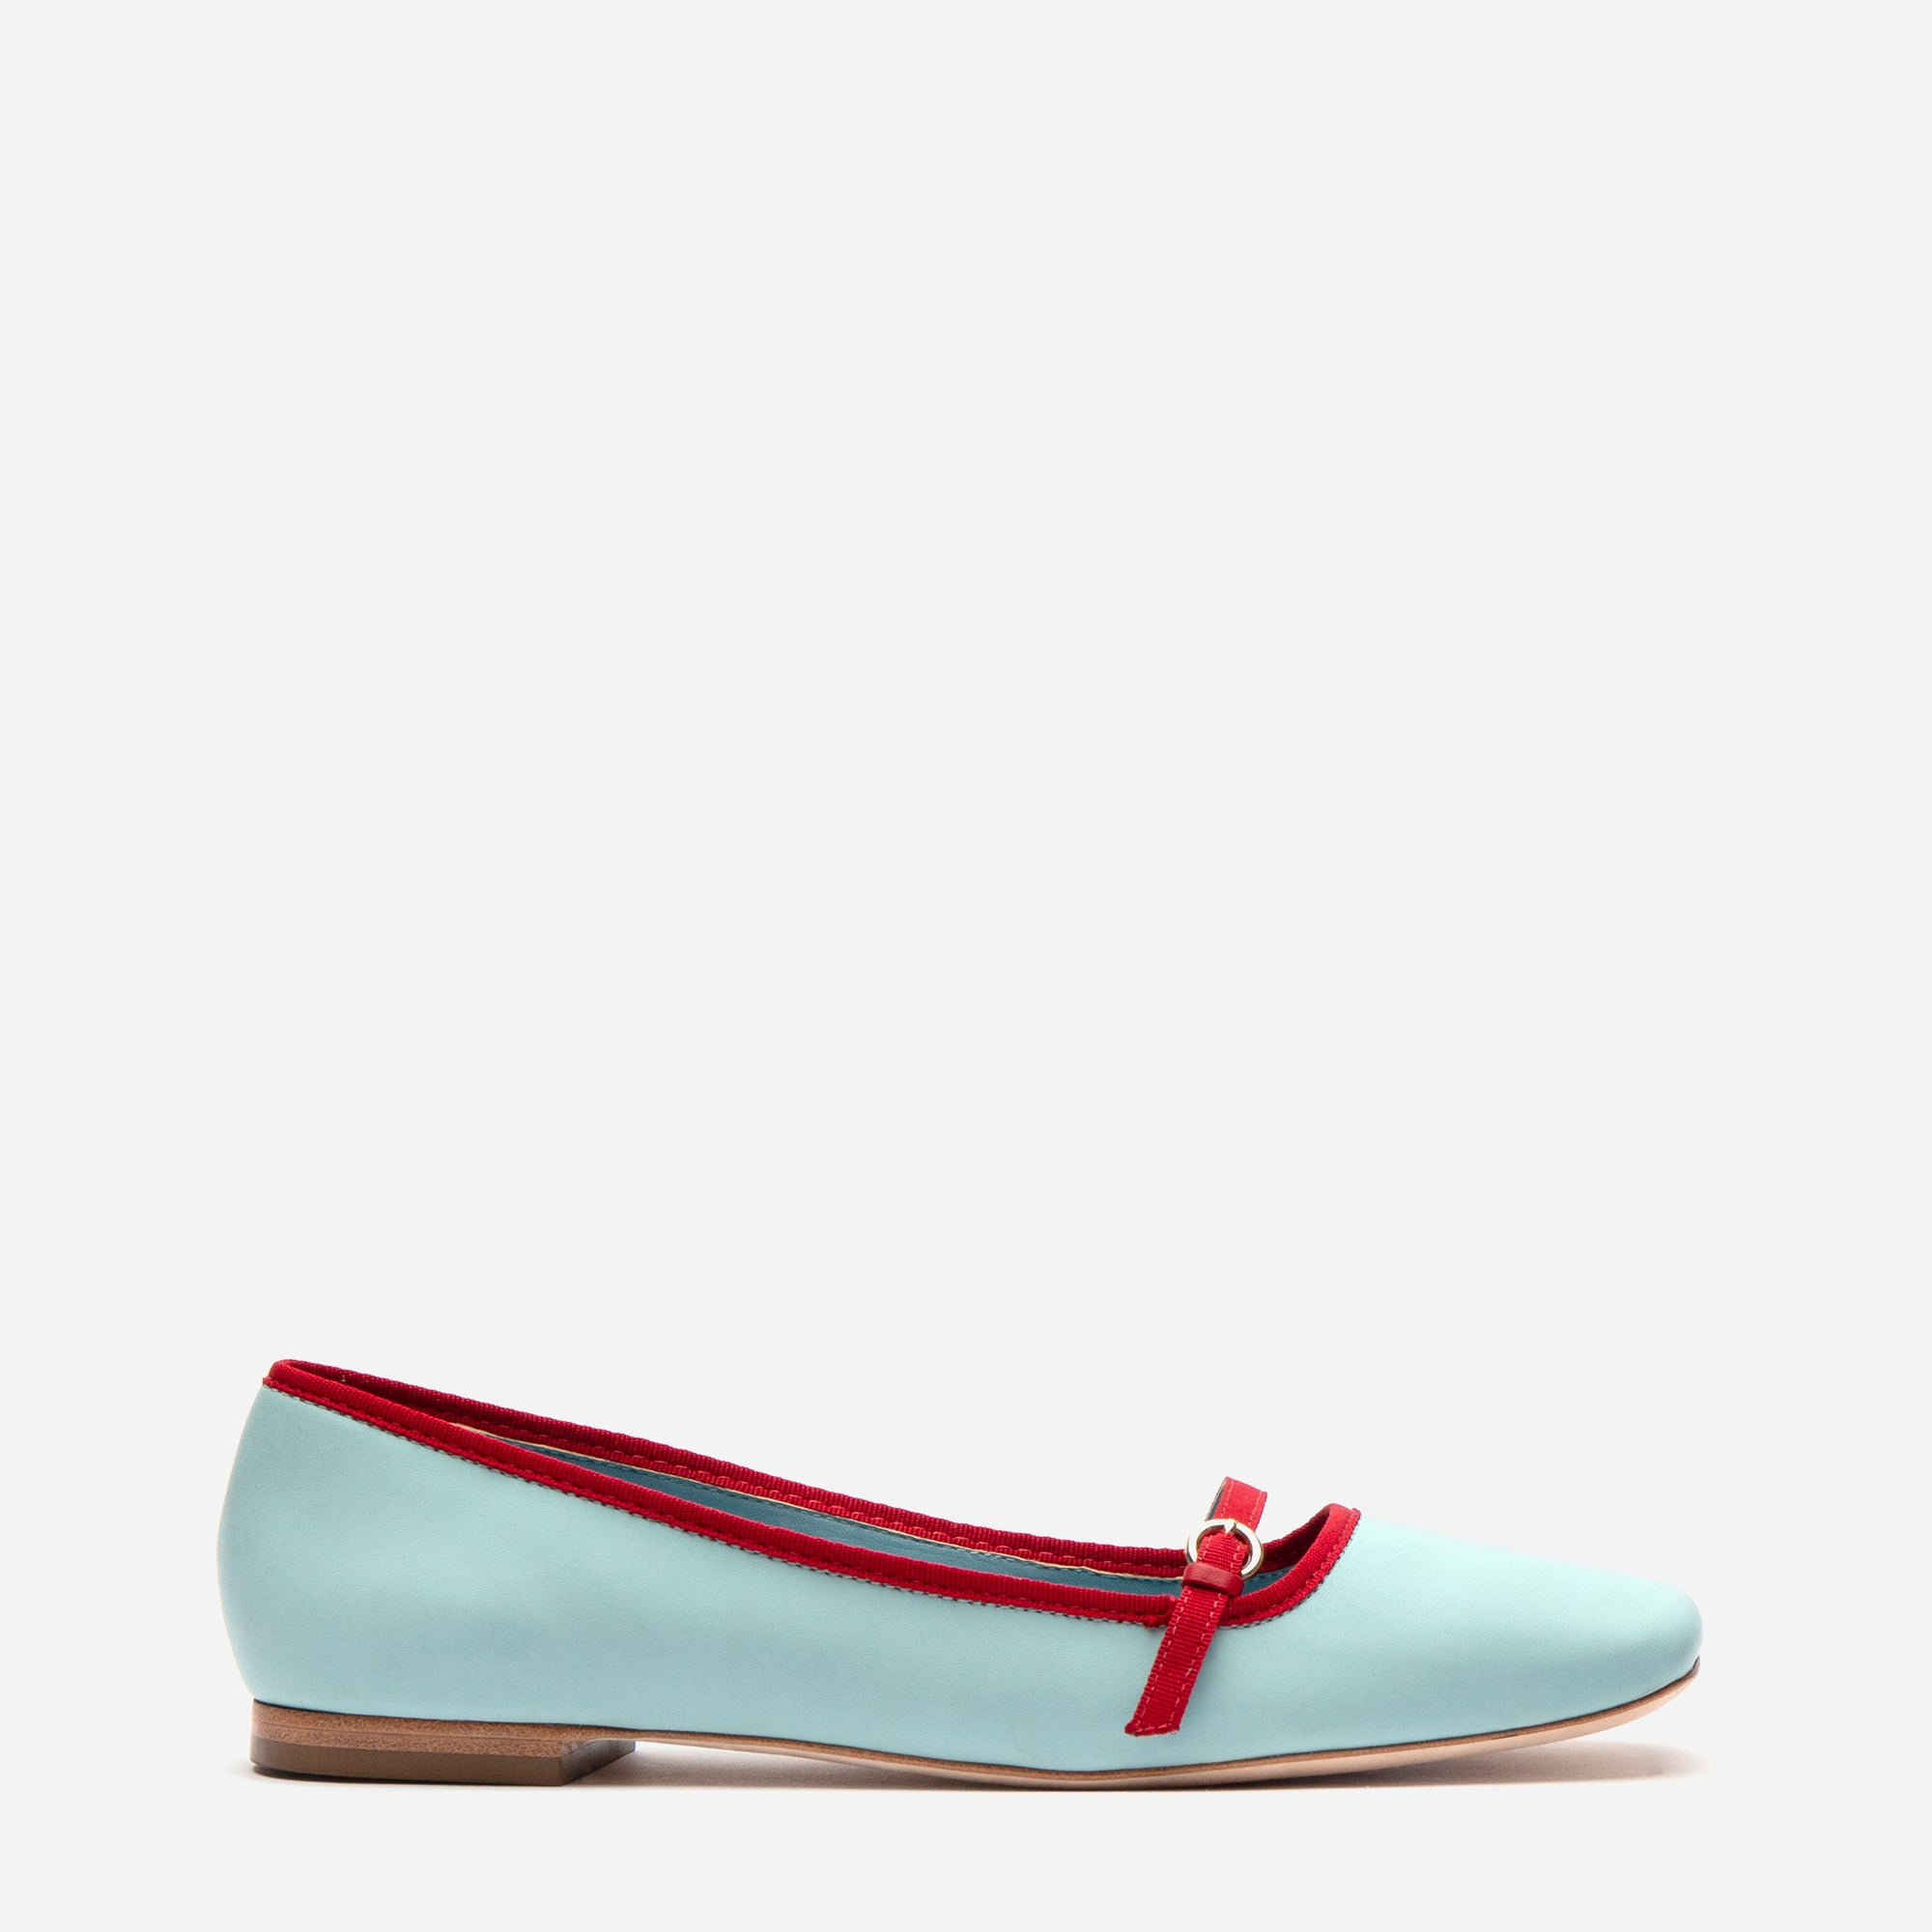 Josie Leather Flat Light Blue Red